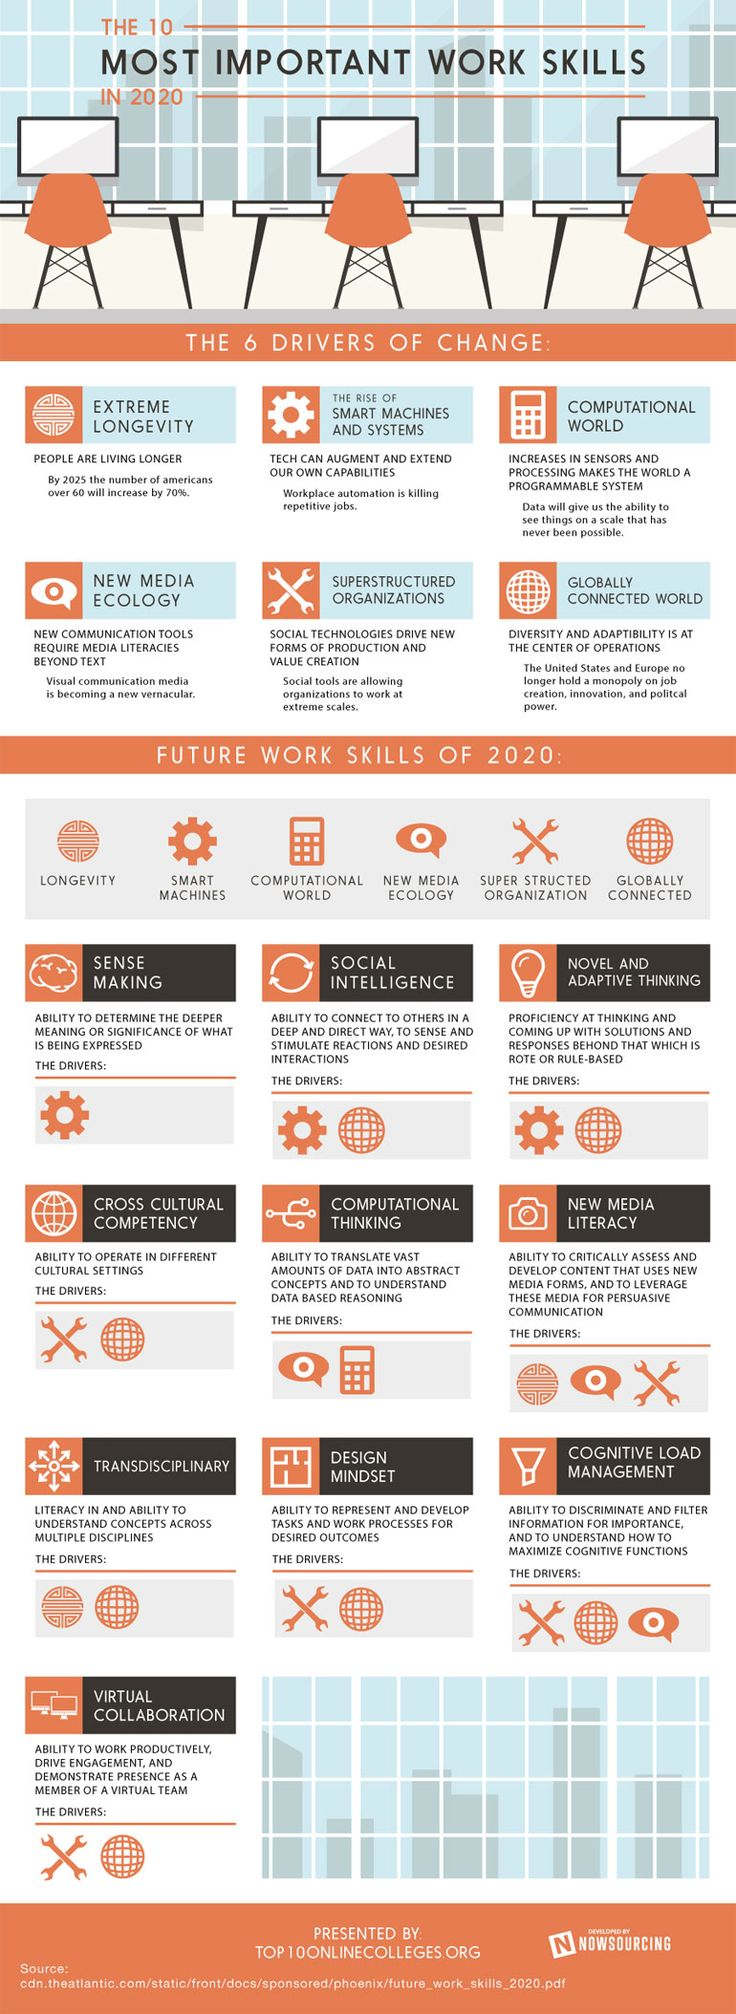 42 best - Conseils Candidats - images on Pinterest | Job cv, French ...